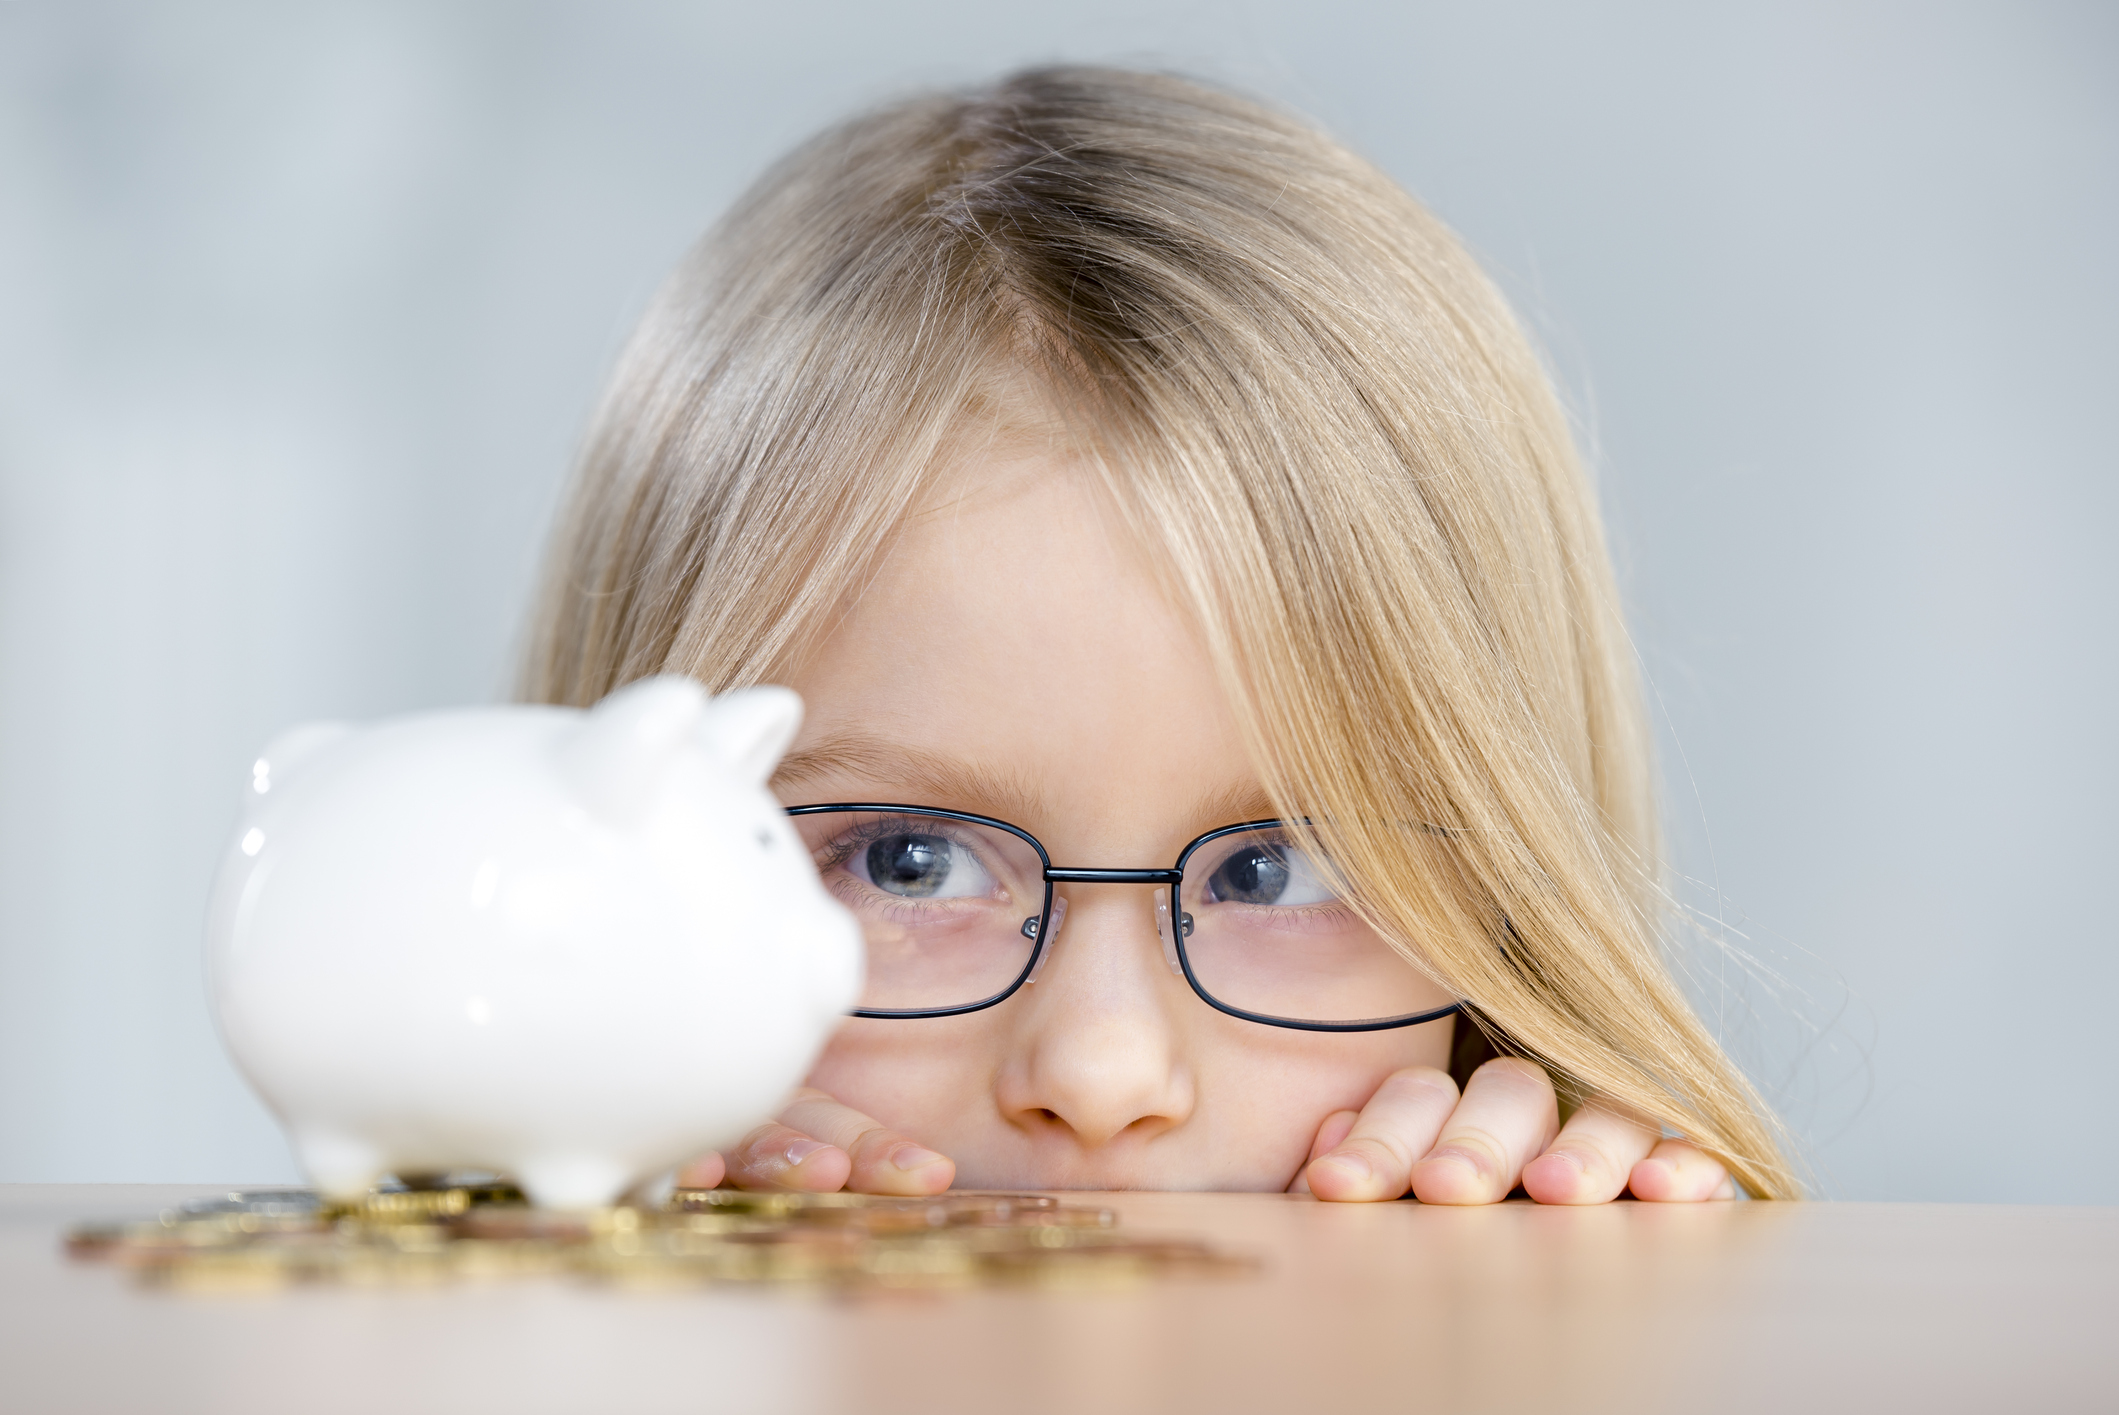 5 Key Lessons to Teach Your Children About Money